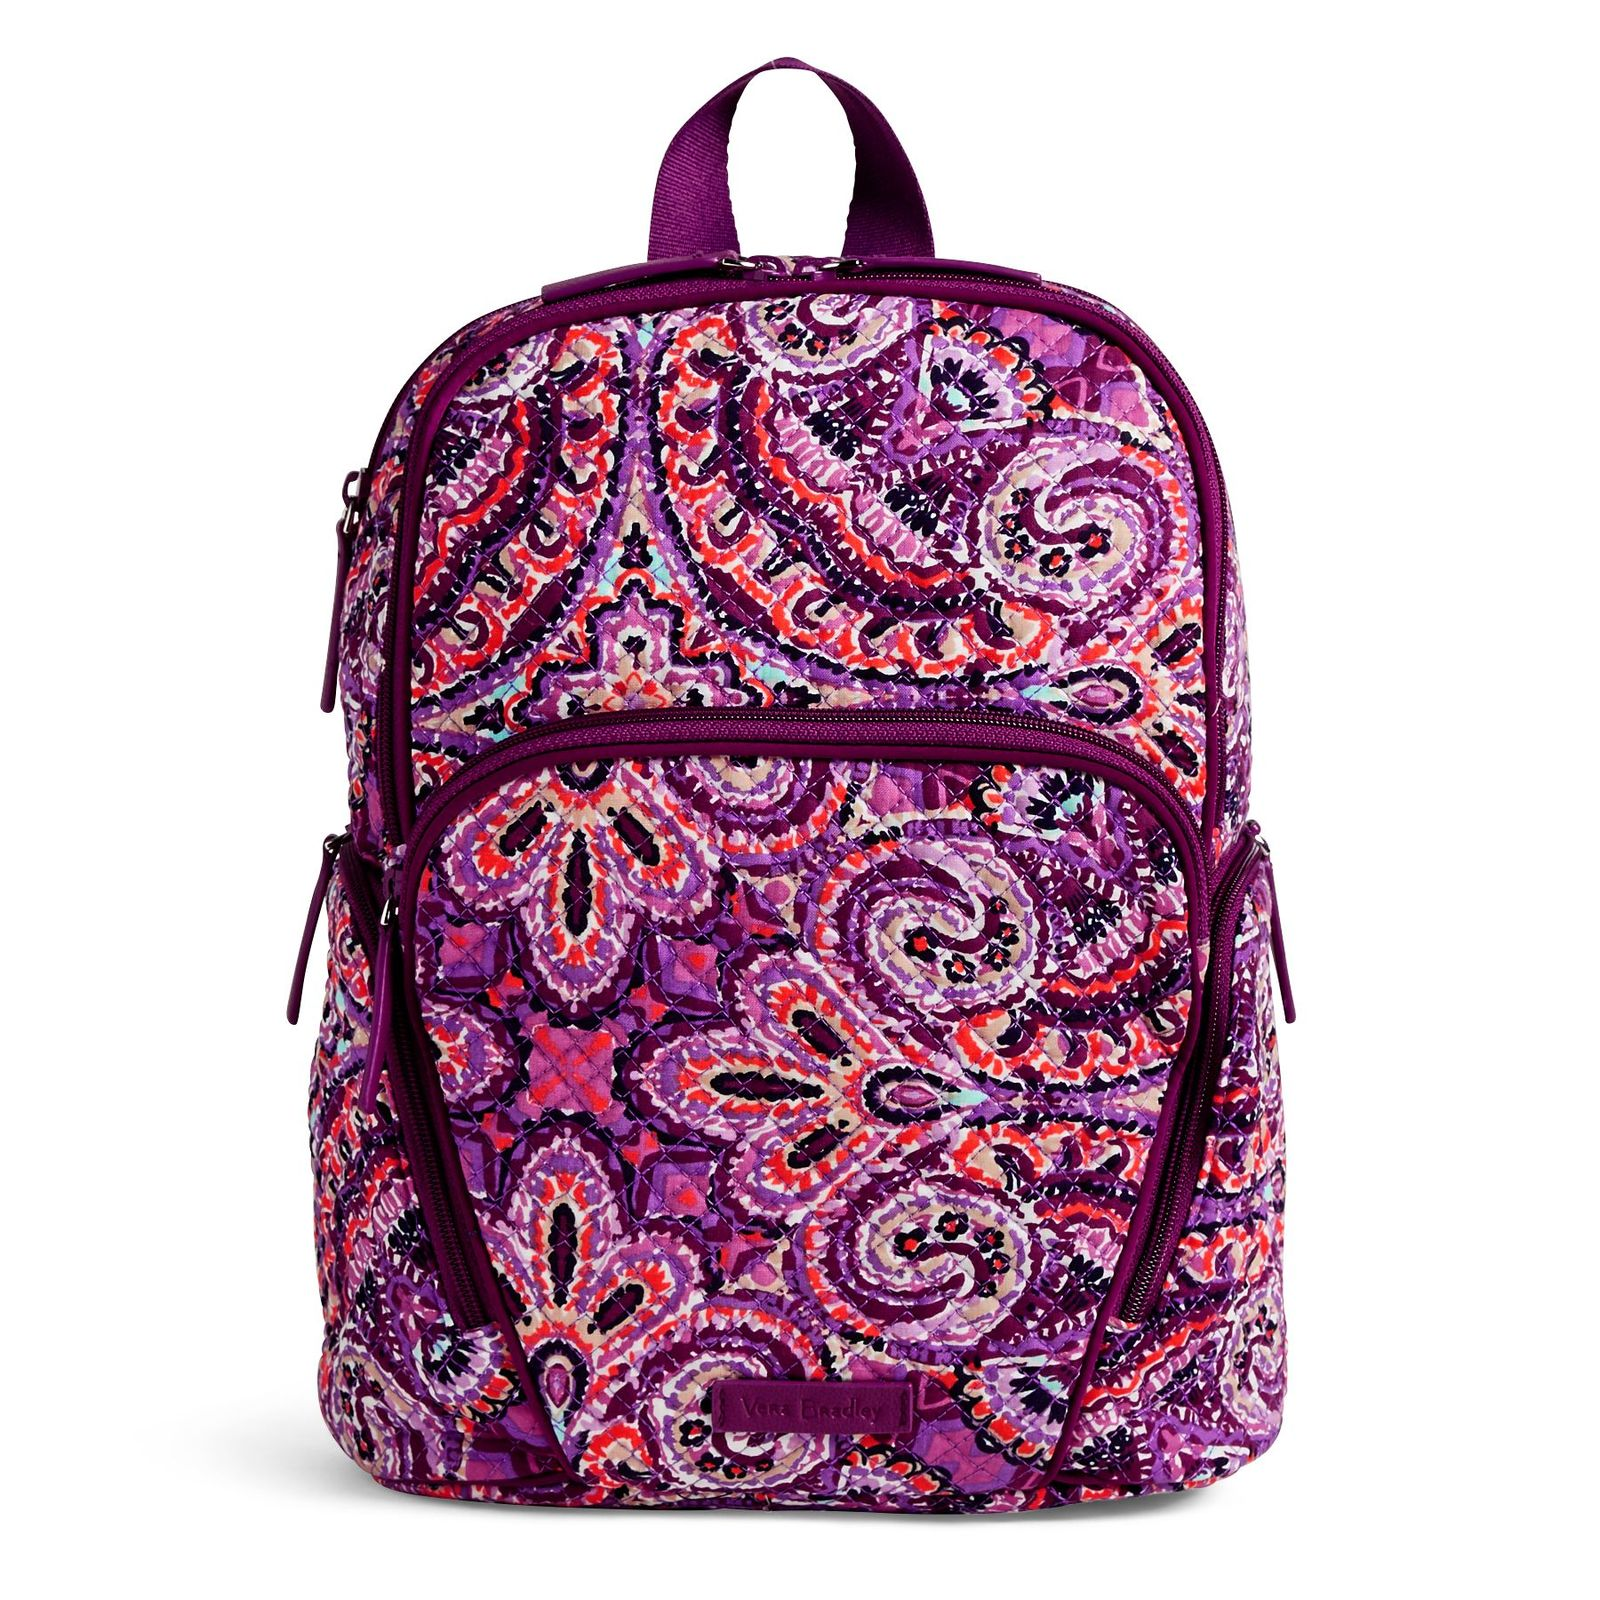 Vera Bradley Quilted Signature Cotton Hadley Backpack, Dream Tapestry